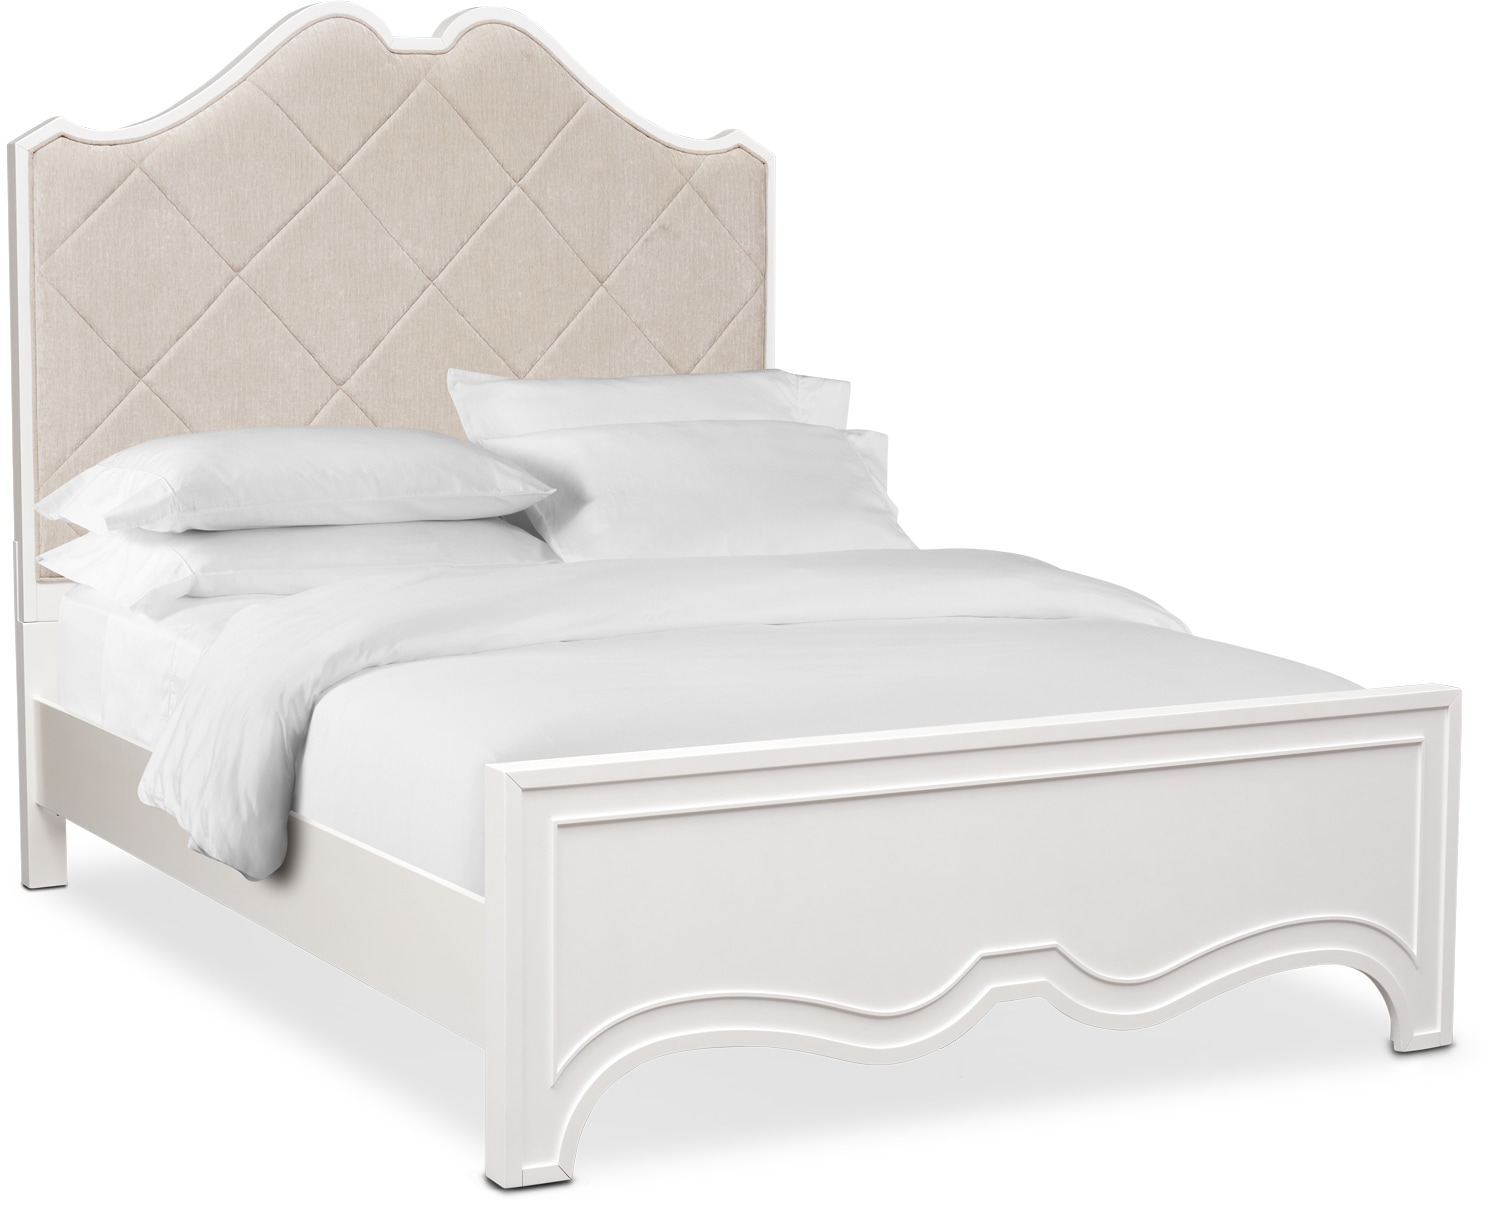 Bedroom Furniture - Isabel Upholstered Bed